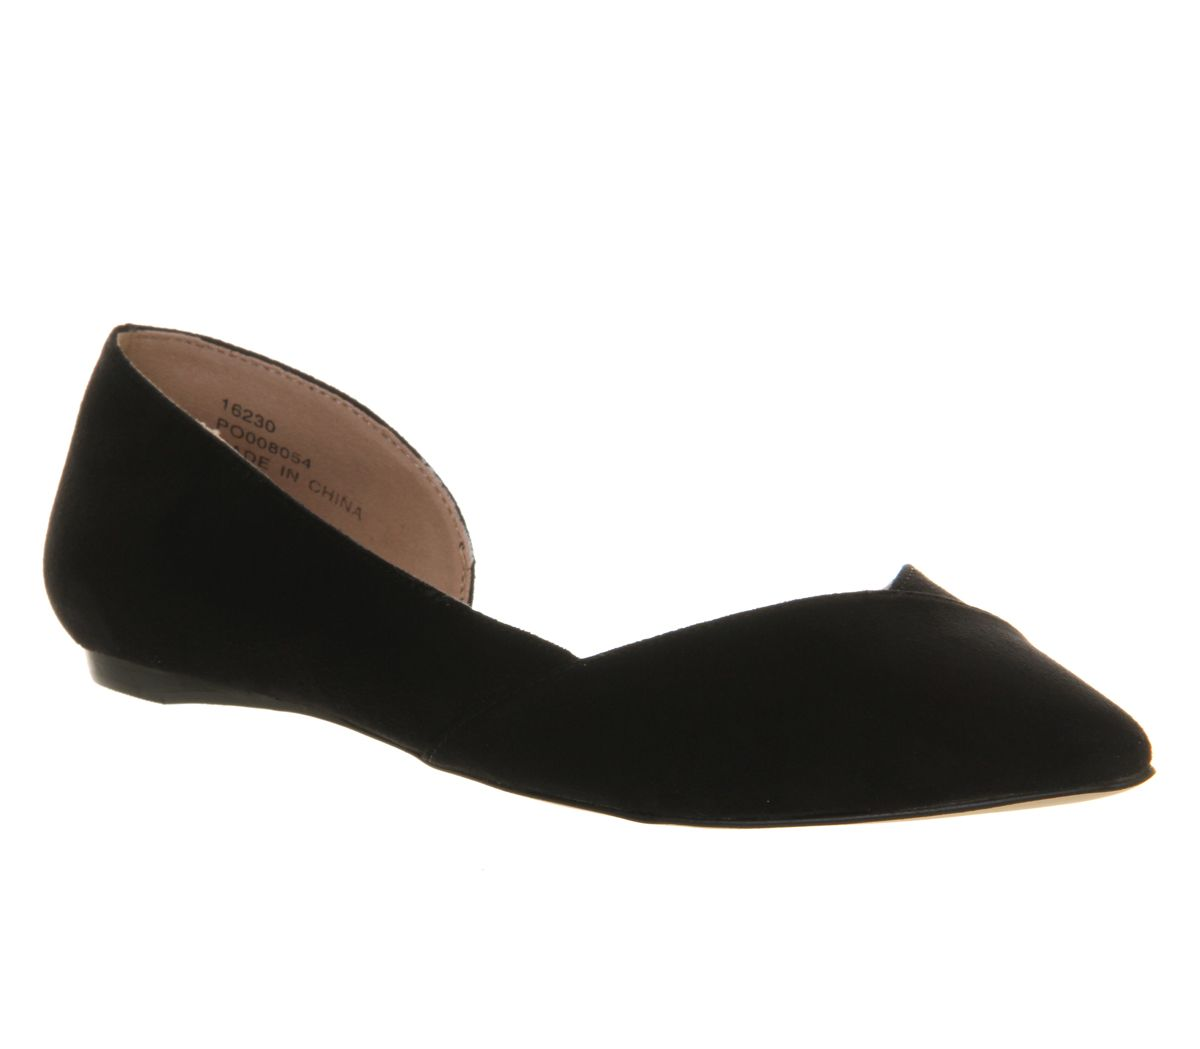 Keepsake dorsay flat slip on shoes